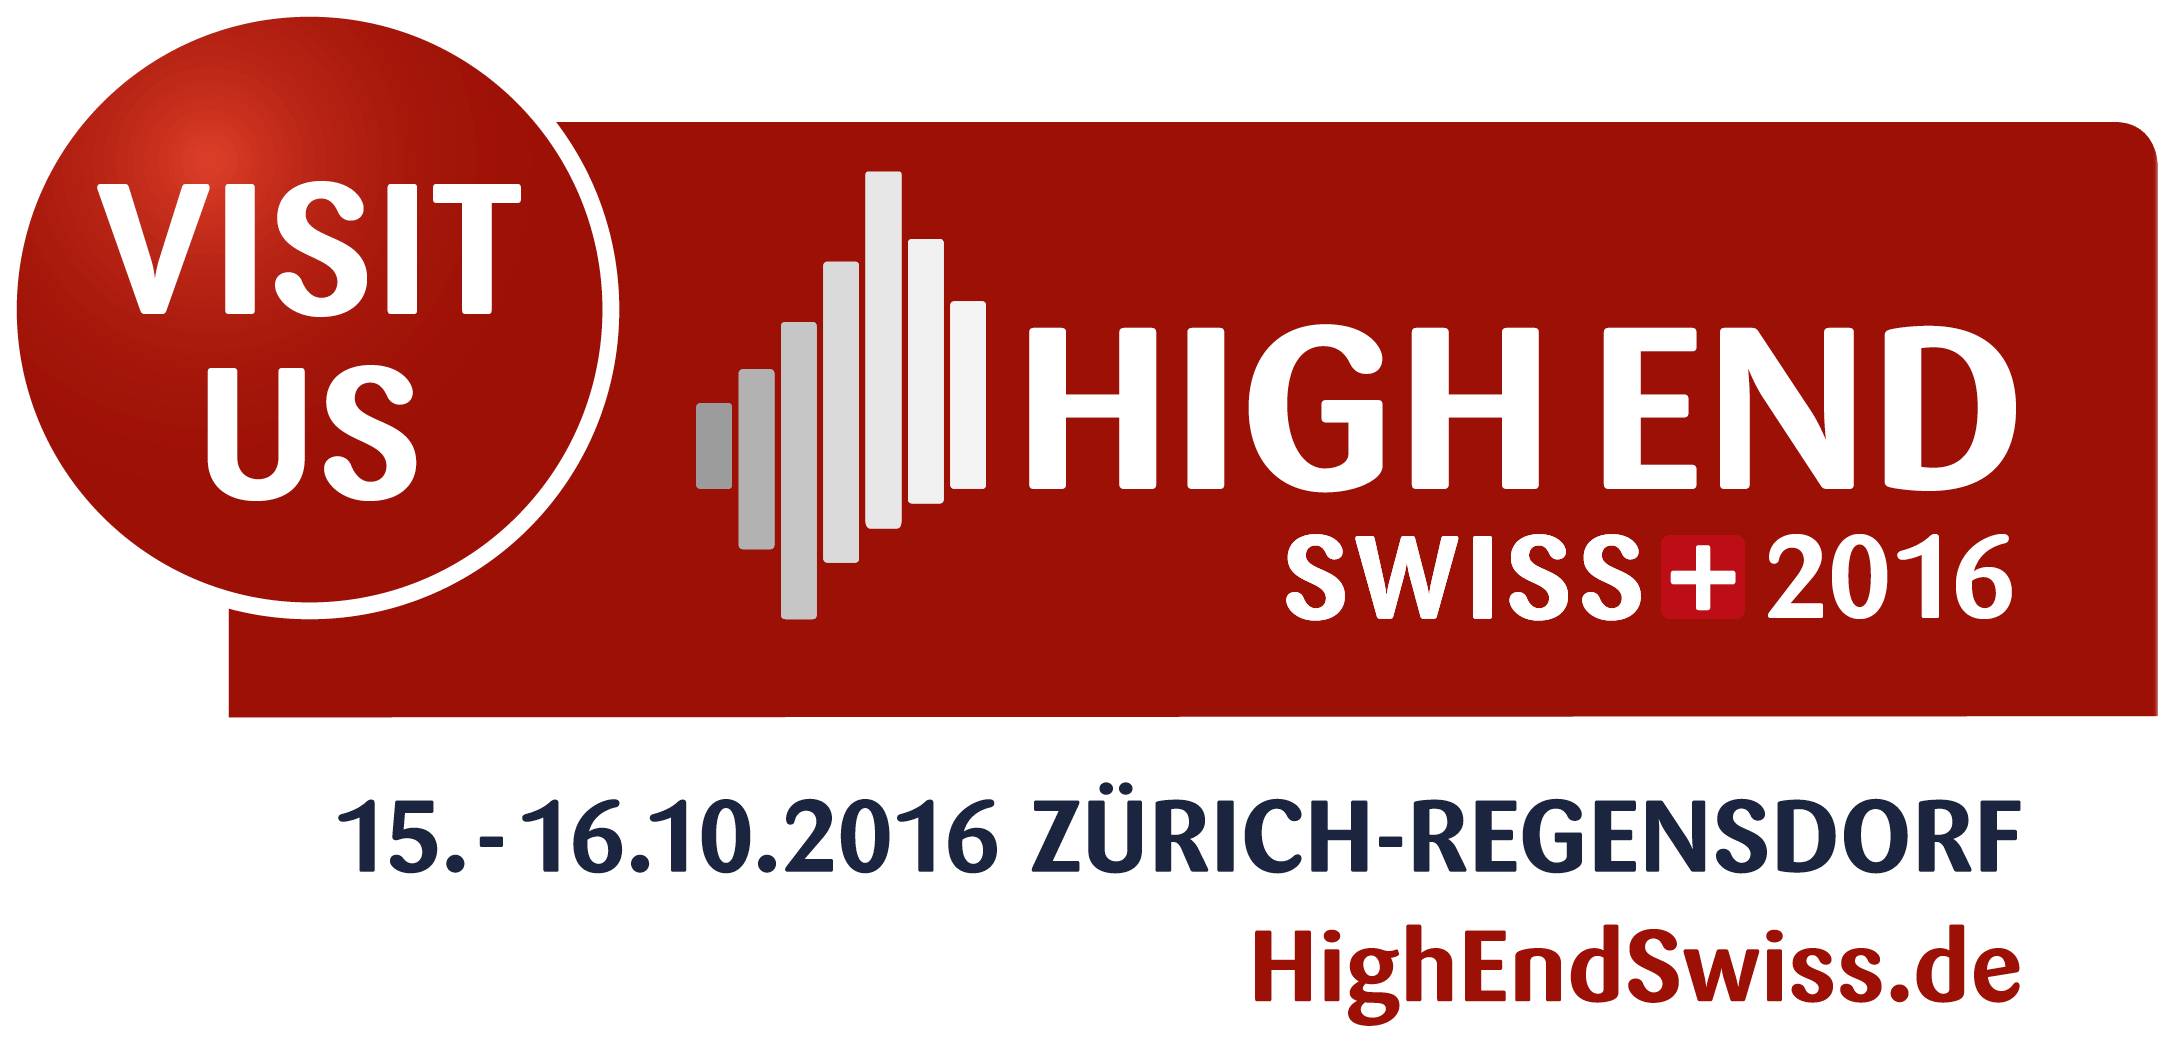 High End Swiss 2016